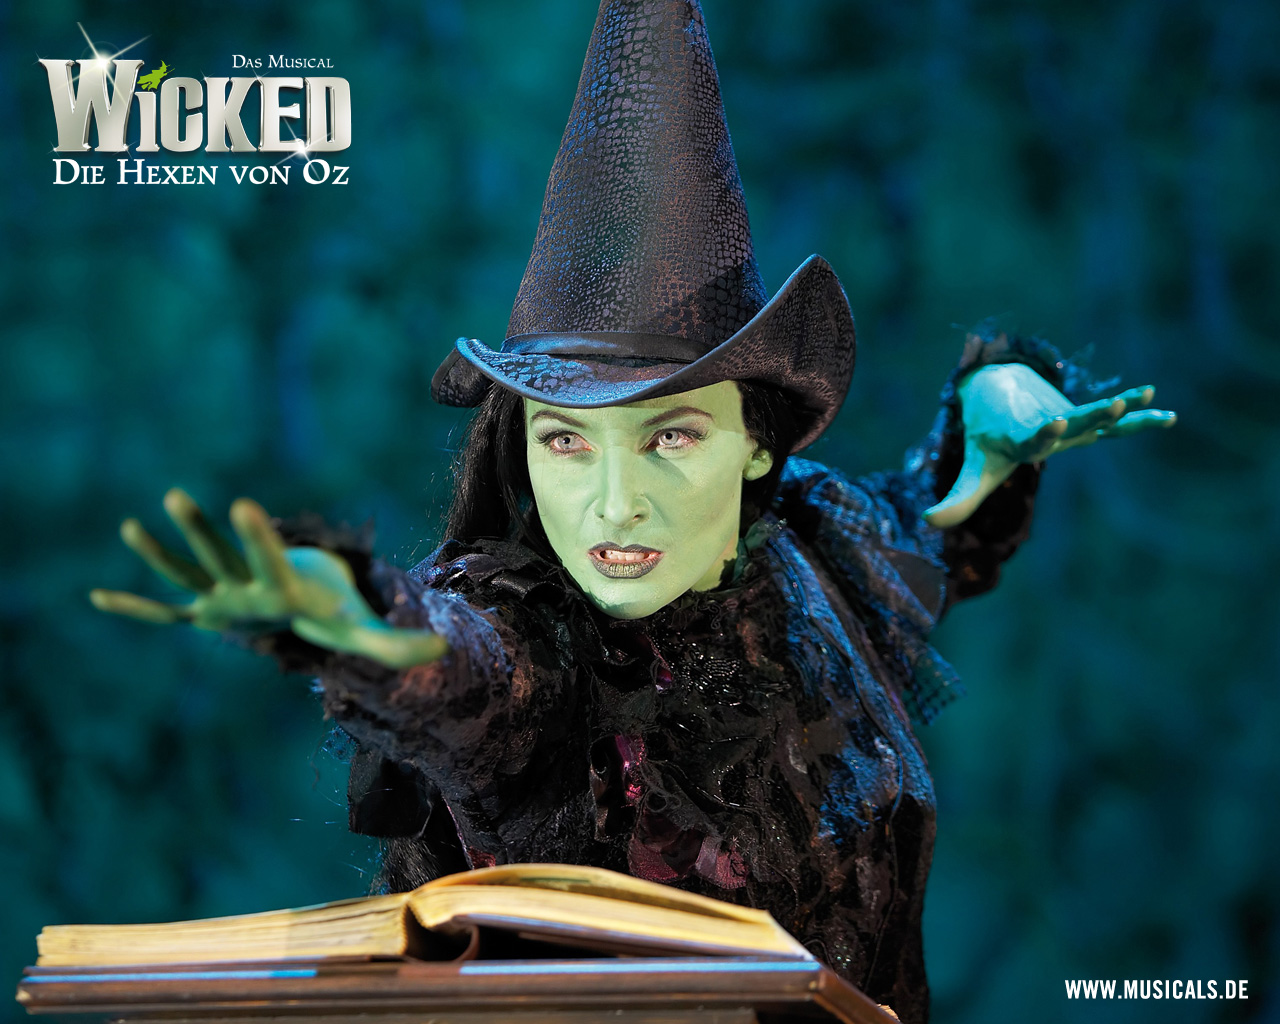 wicked musical wallpaper desktop wallpapersafari